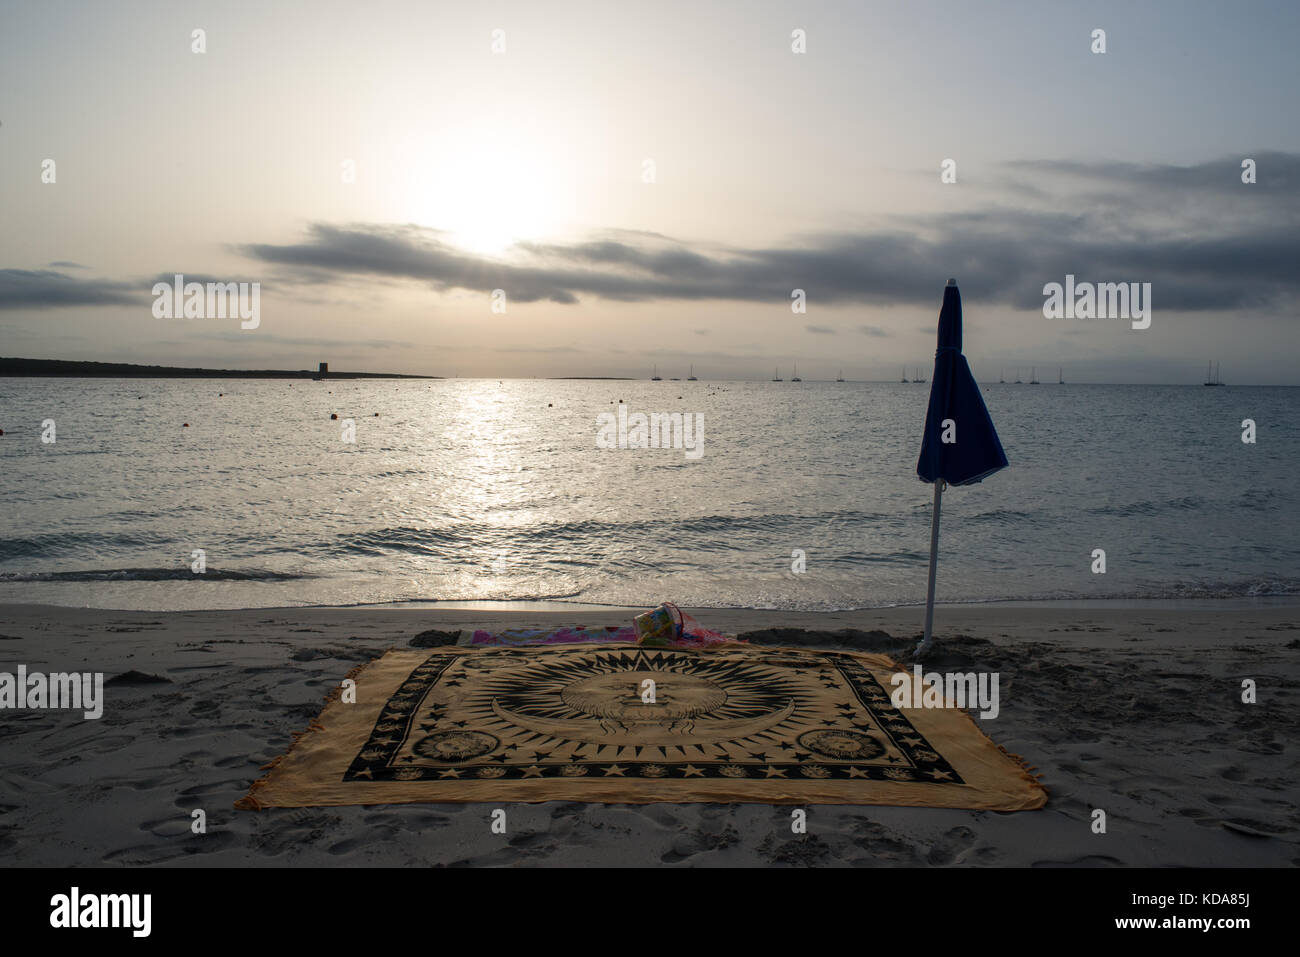 A scenic view of La Pelosa beach at sunrise in summer. A beach towel and umbrella in the sand with sea in background. - Stock Image